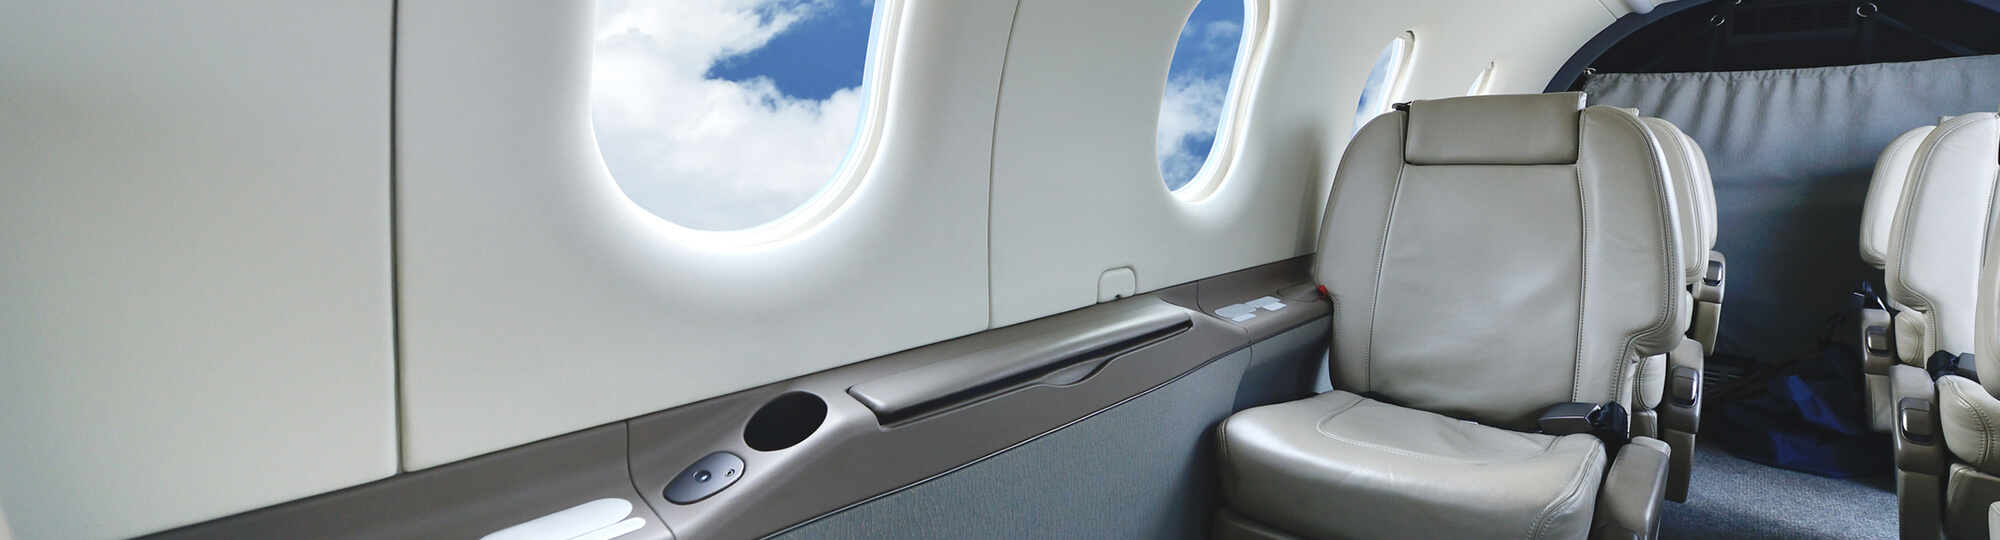 Now boarding. Ready to migrate to the cloud? We've saved a first-class seat just for you.